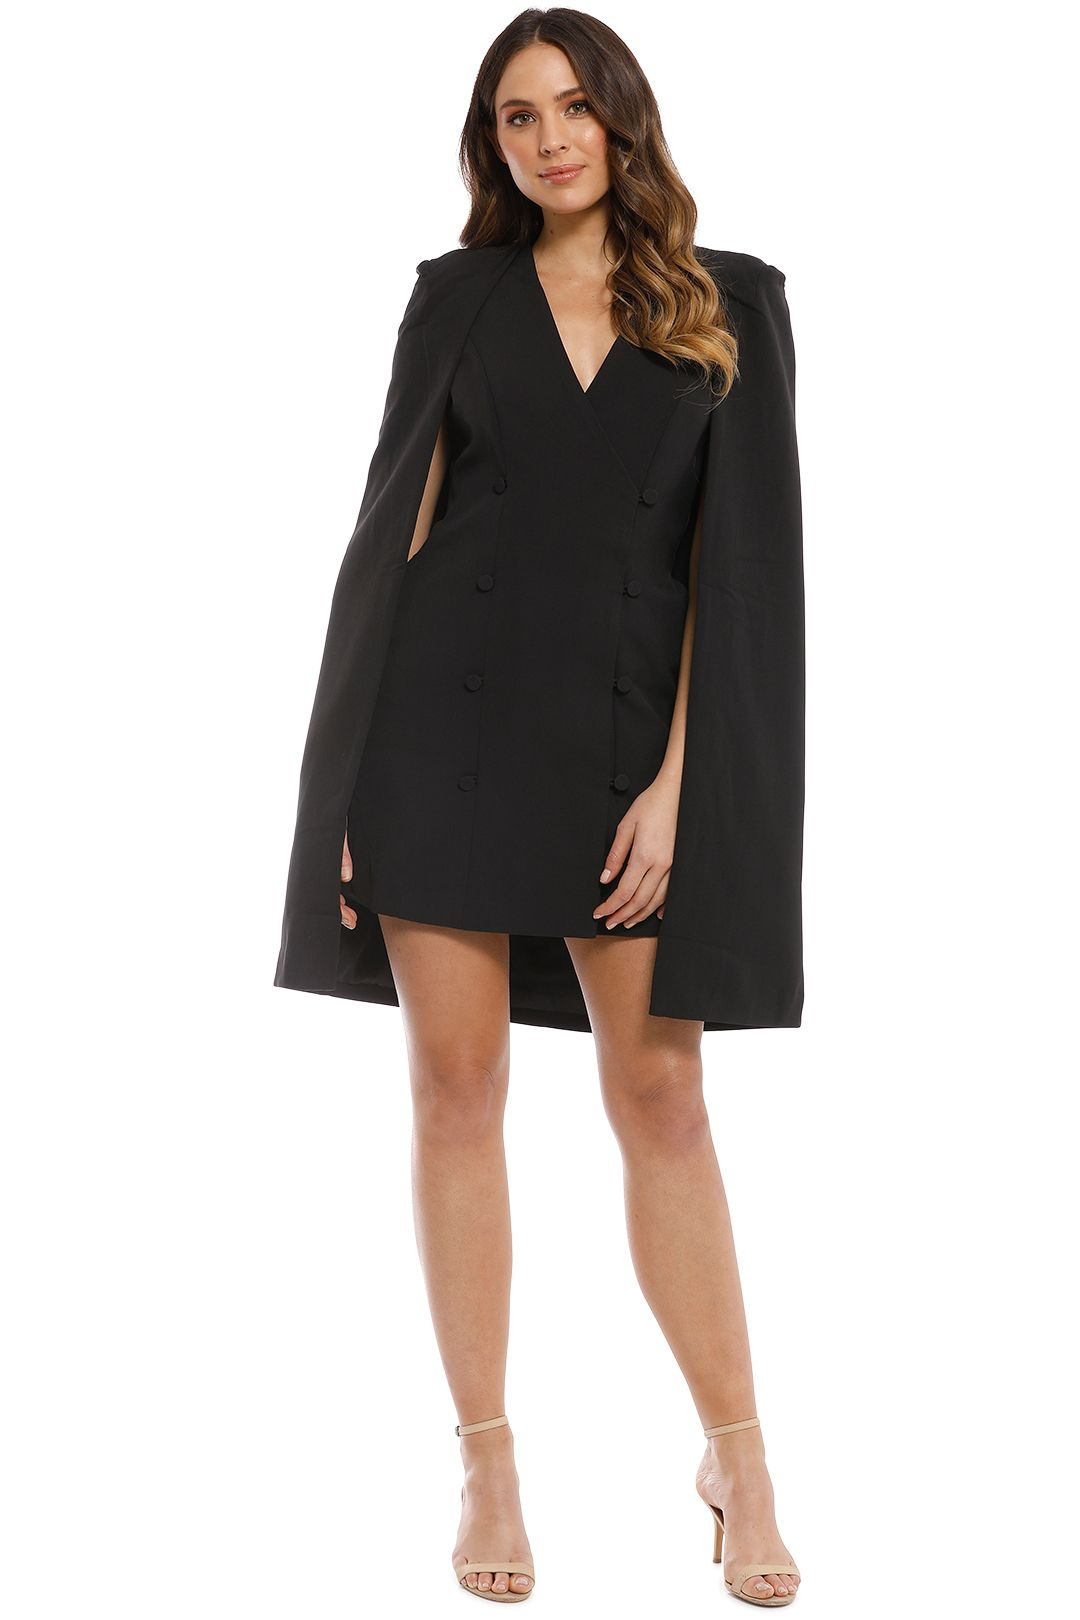 Elliatt - Sorrento Cape - Black - Front